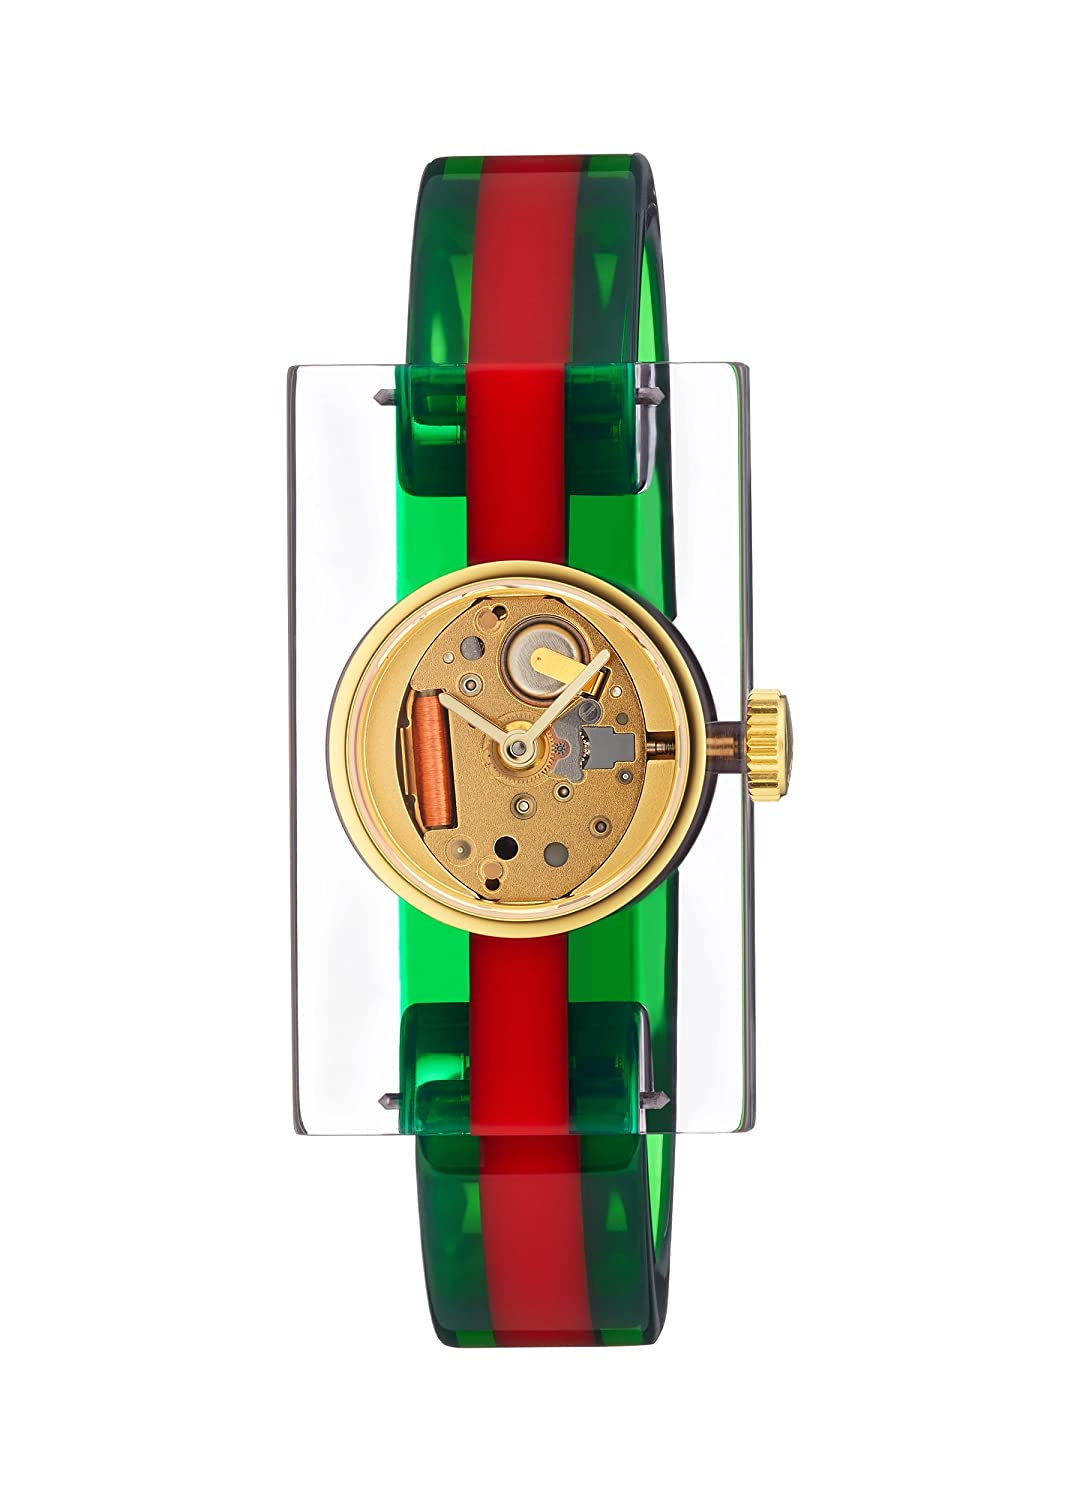 10506ec87f5 Gucci - Women s Watch YA143503  ALESSANDRO MICHELE  Amazon.co.uk  Watches